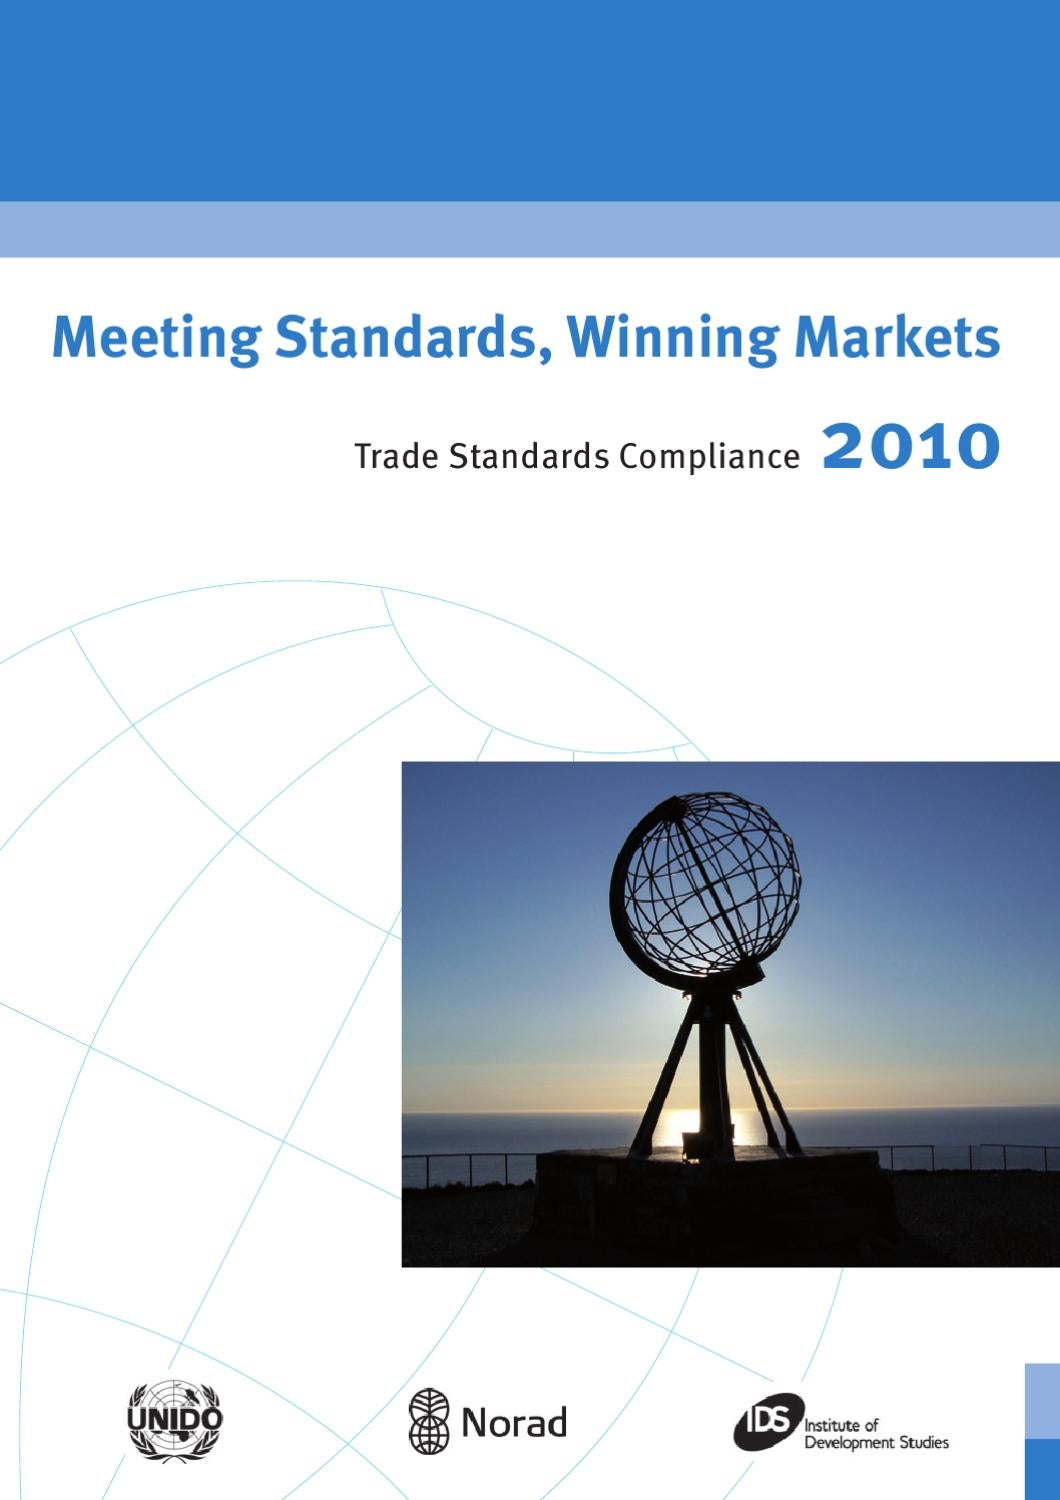 Meeting Standards Winning Markets Trade Compliance 2010 Oliver 1850 Wiring Diagram Free Download Schematic By Unido Issuu